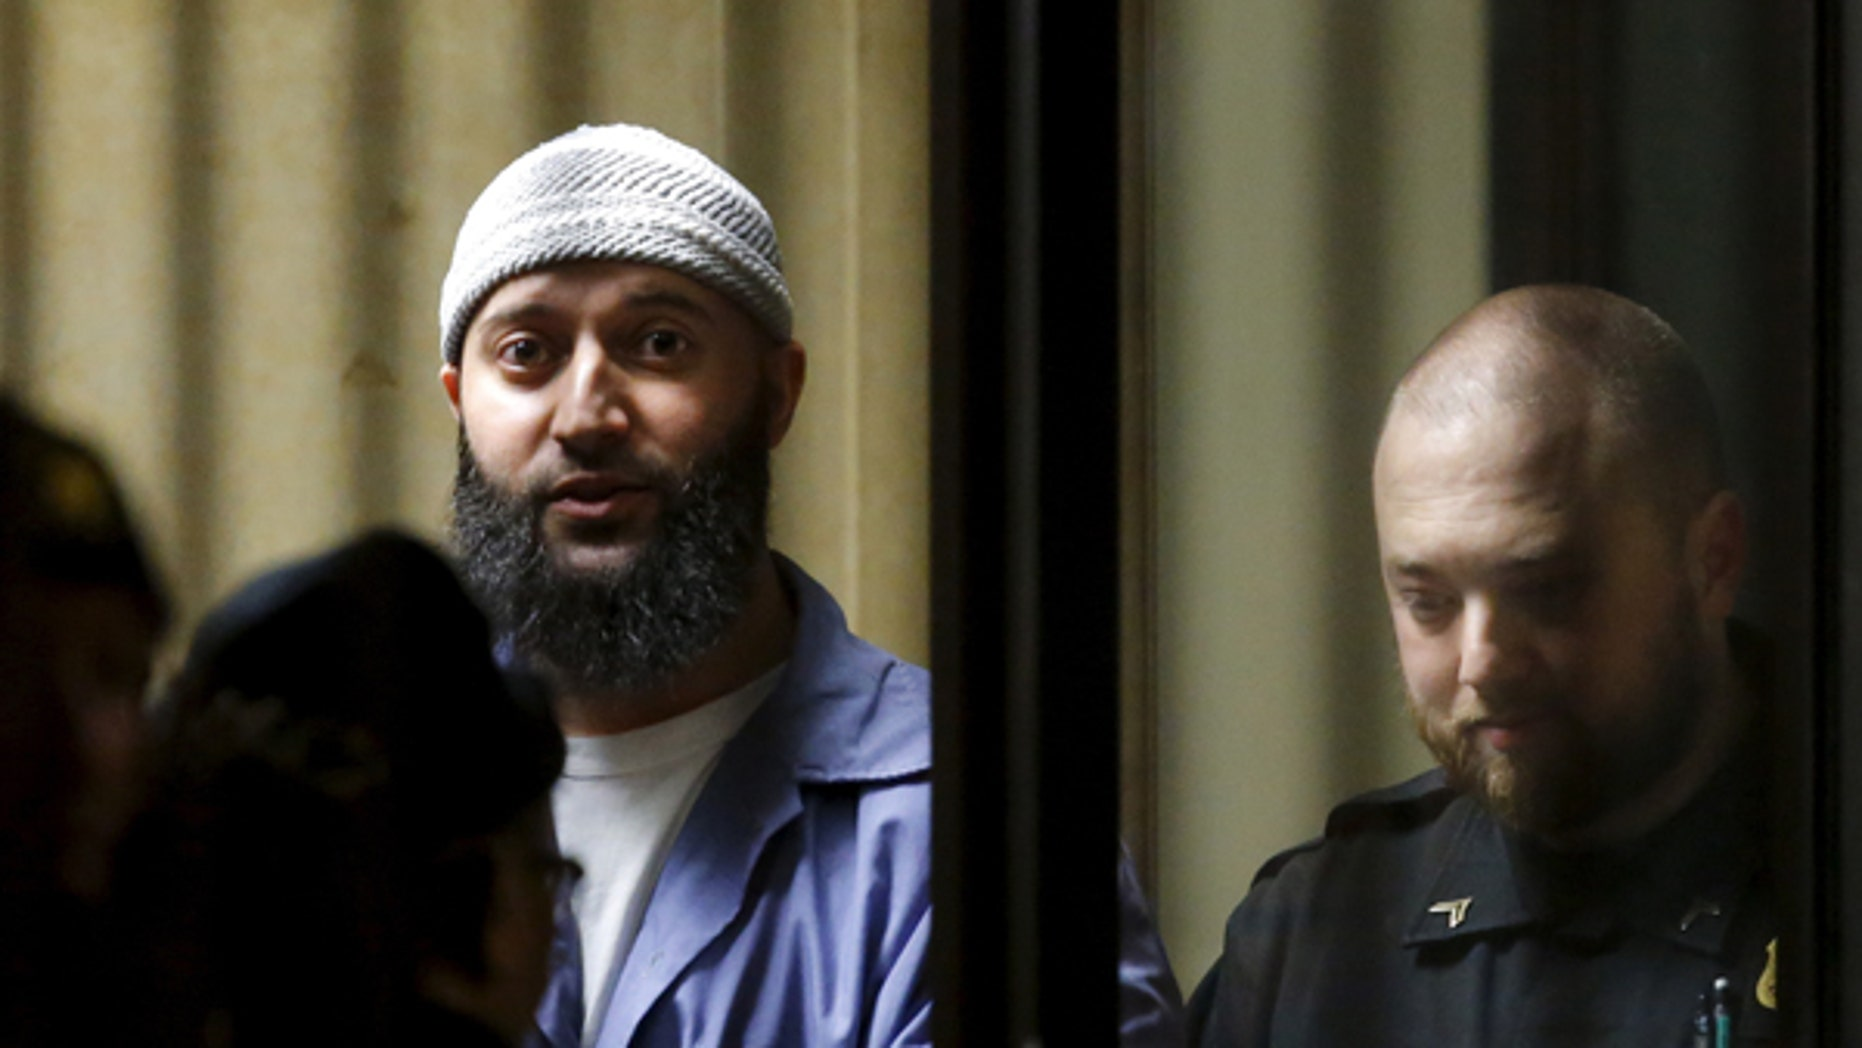 """Convicted murderer Adnan Syed leaves the Baltimore City Circuit Courthouse in Baltimore, Maryland February 5, 2016. The Maryland man whose 2000 murder conviction was thrown into question by the popular """"Serial"""" podcast was in court today to argue he deserved a new trial because his lawyers had done a poor job with his case."""